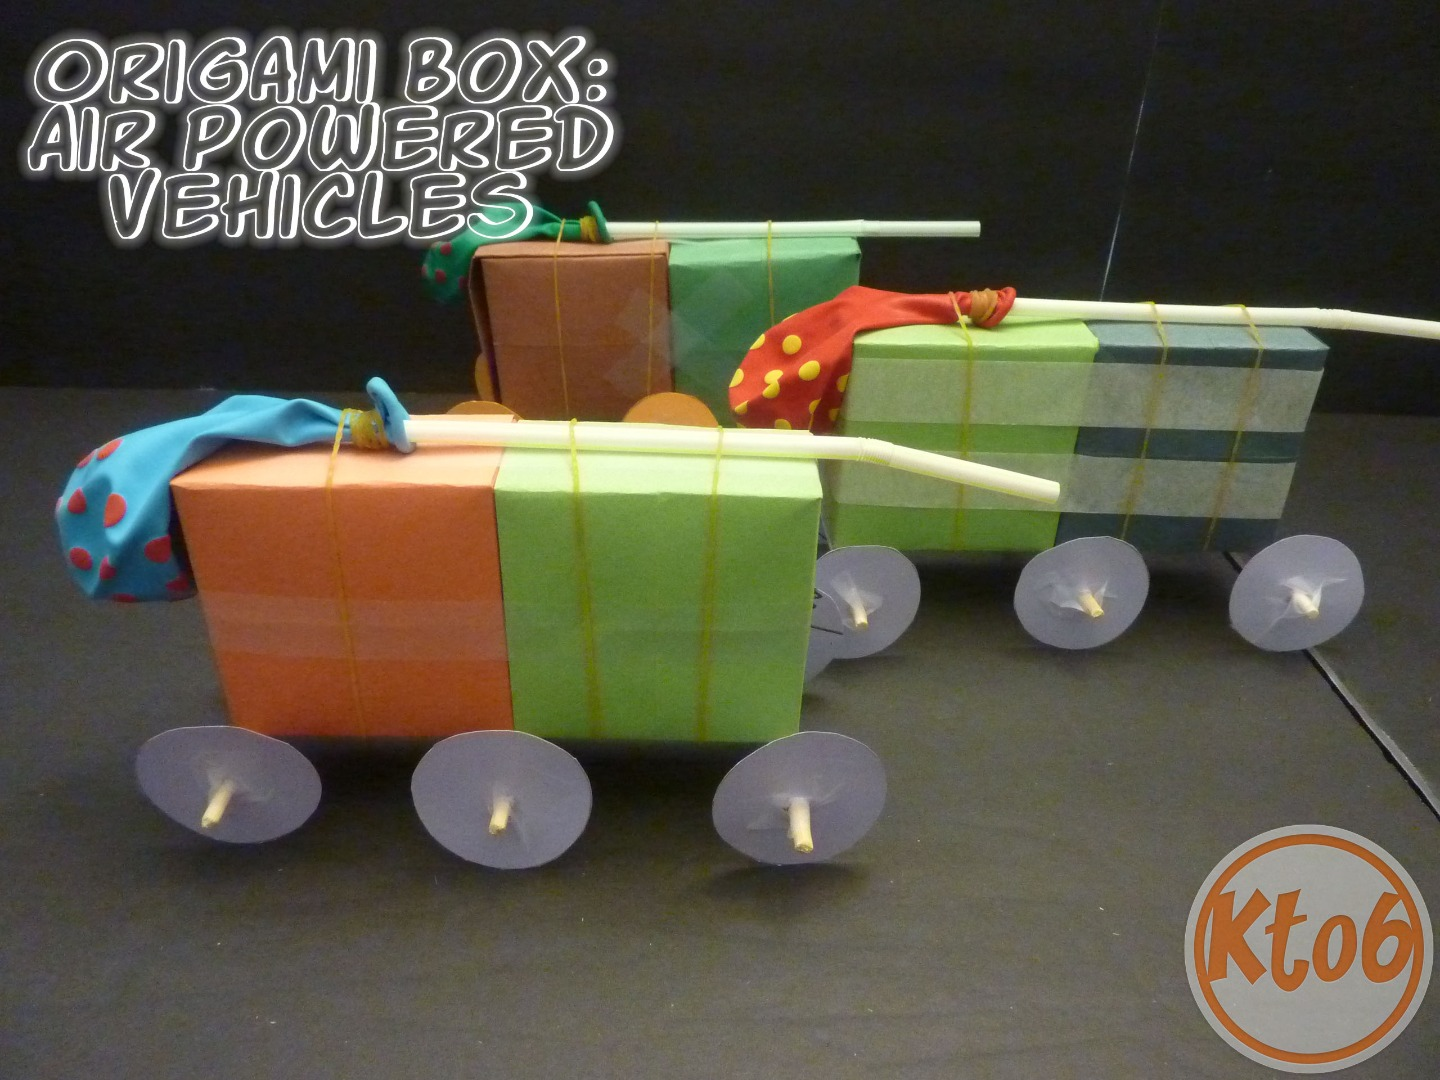 Picture of Origami Box (used As Air-powered Vehicle Body)